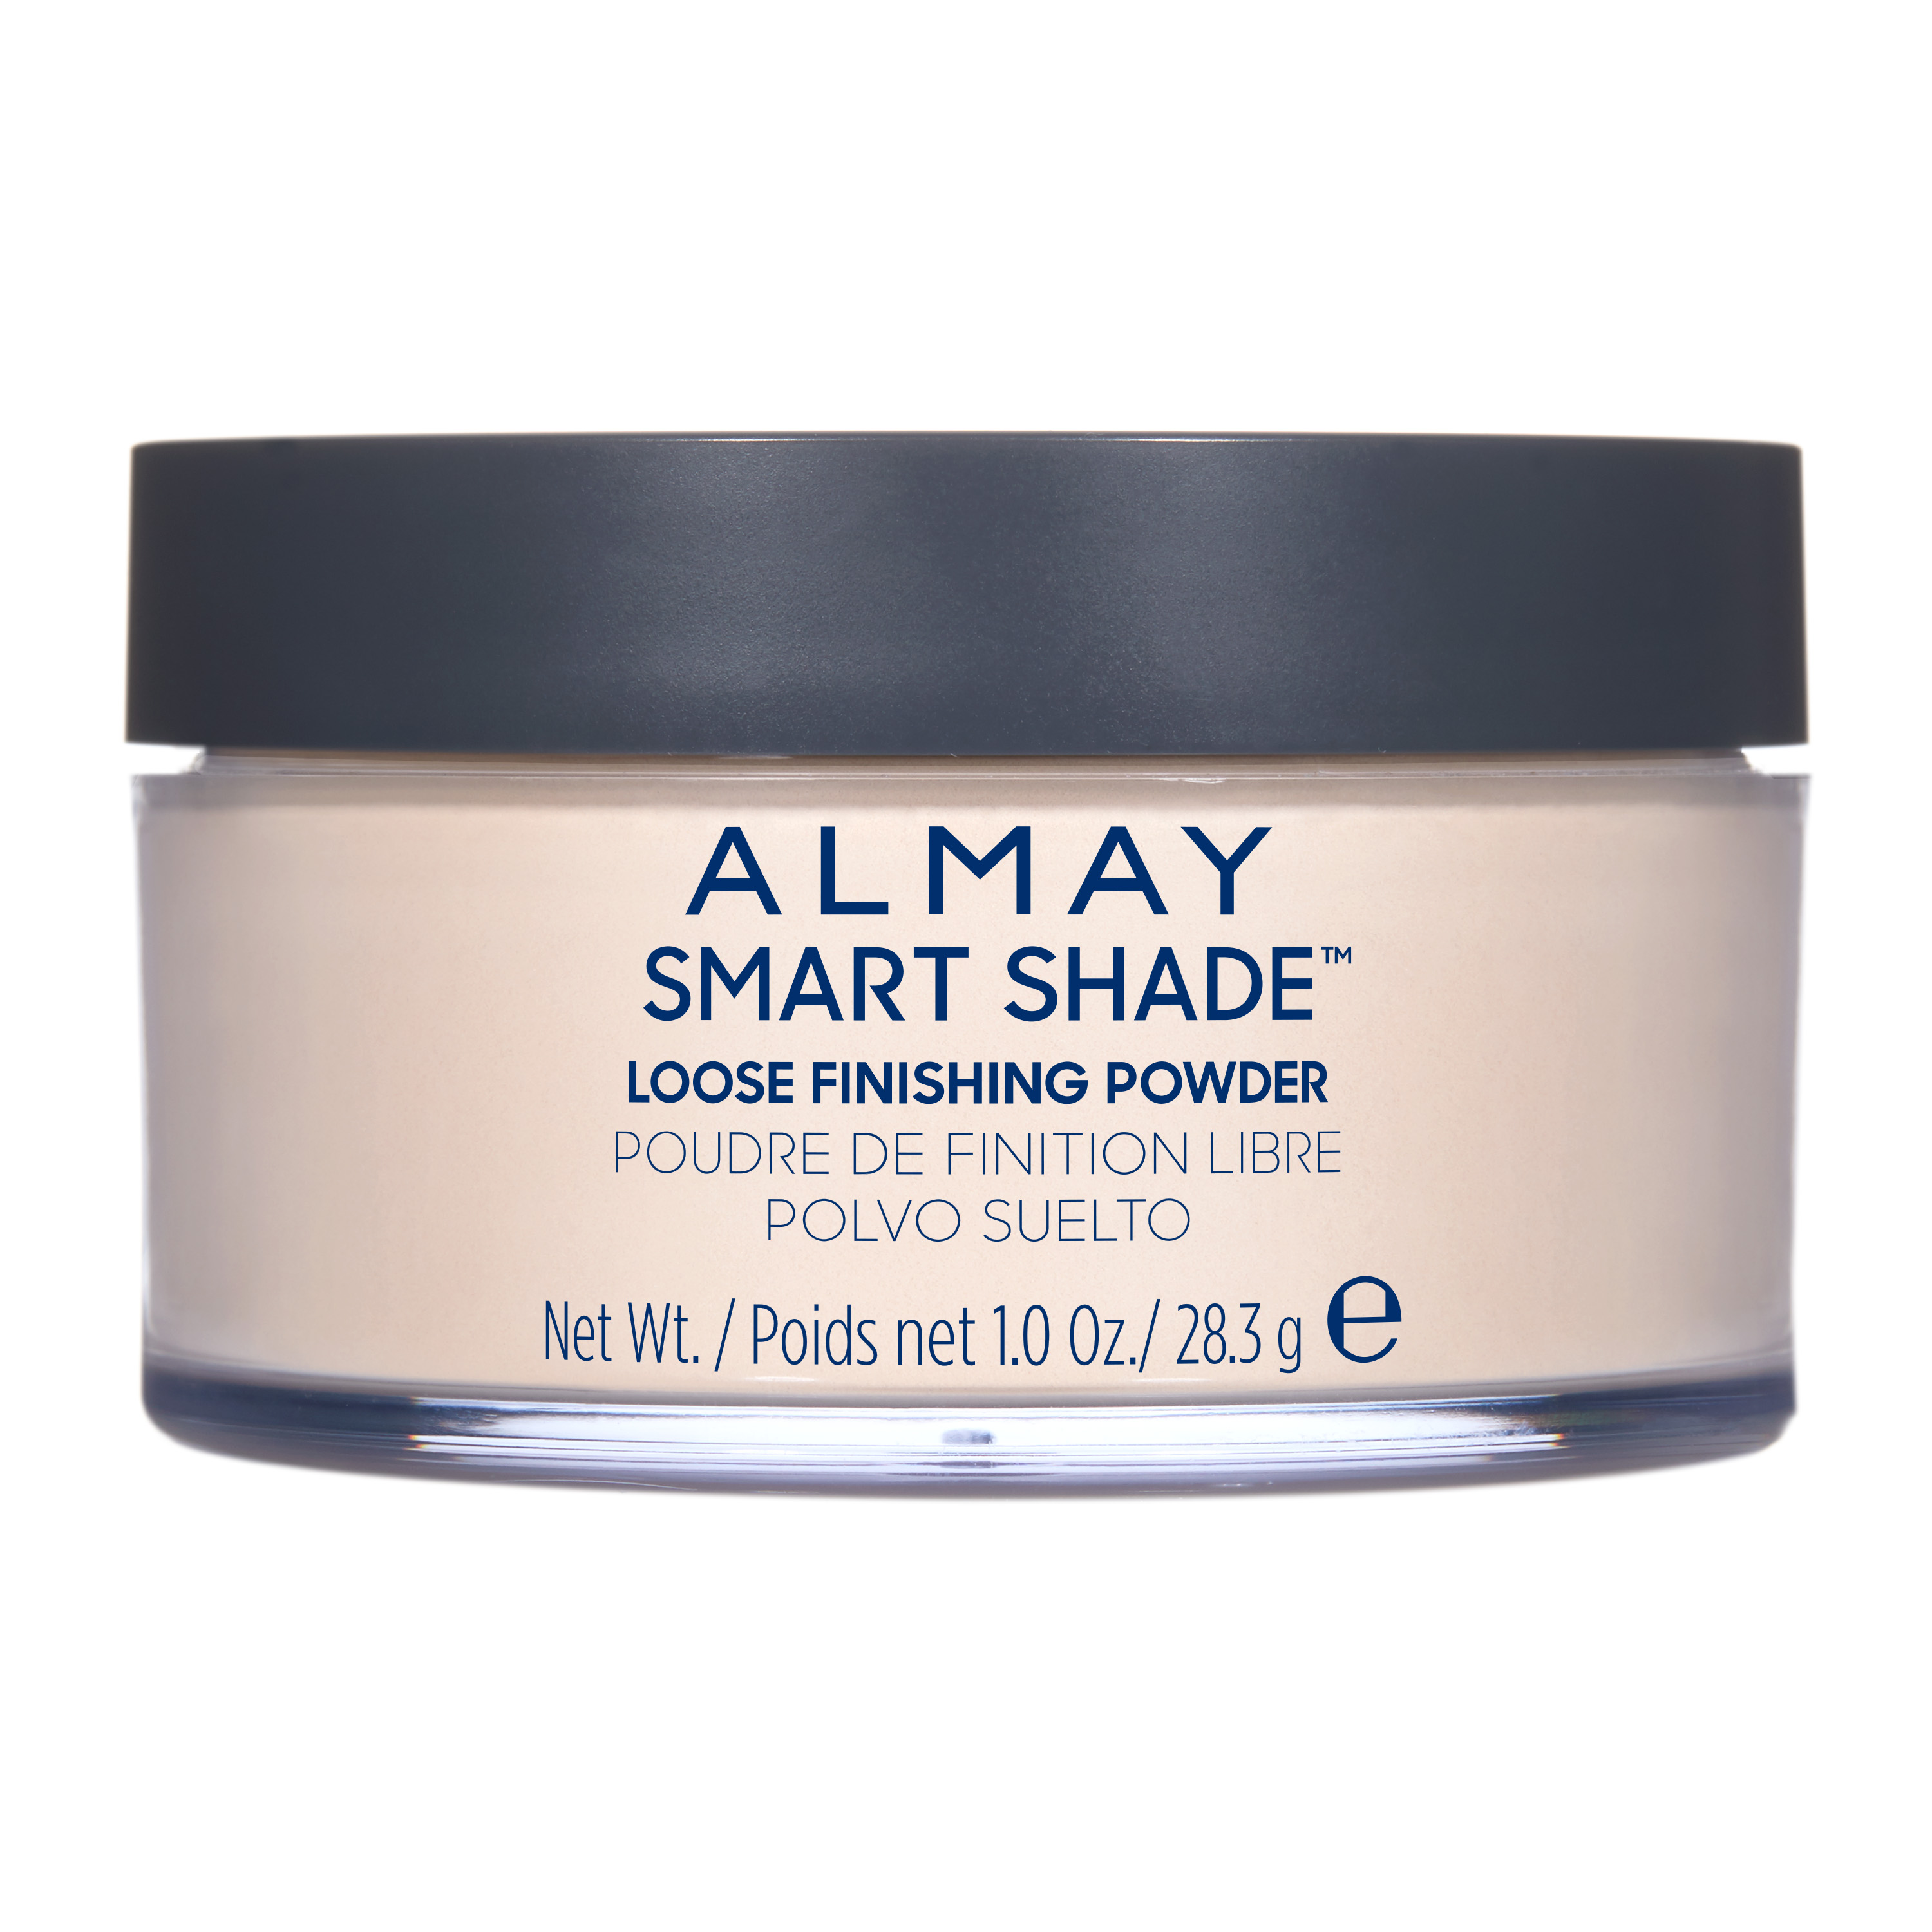 Almay Loose Finishing Powder, Light/medium